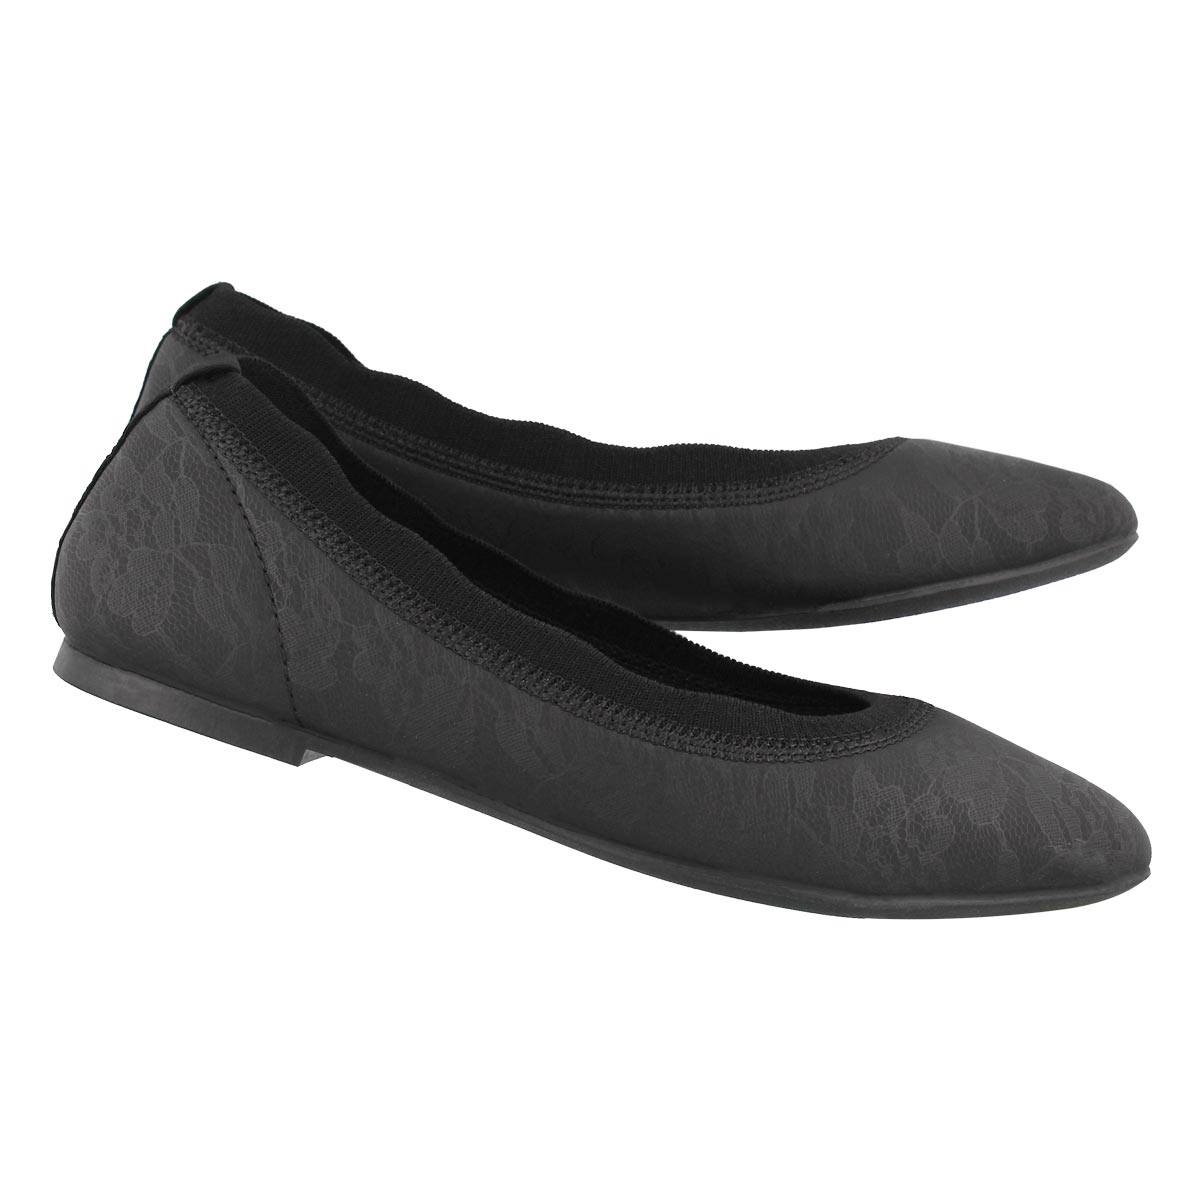 Lds Cleo Lace Place blk casual flat